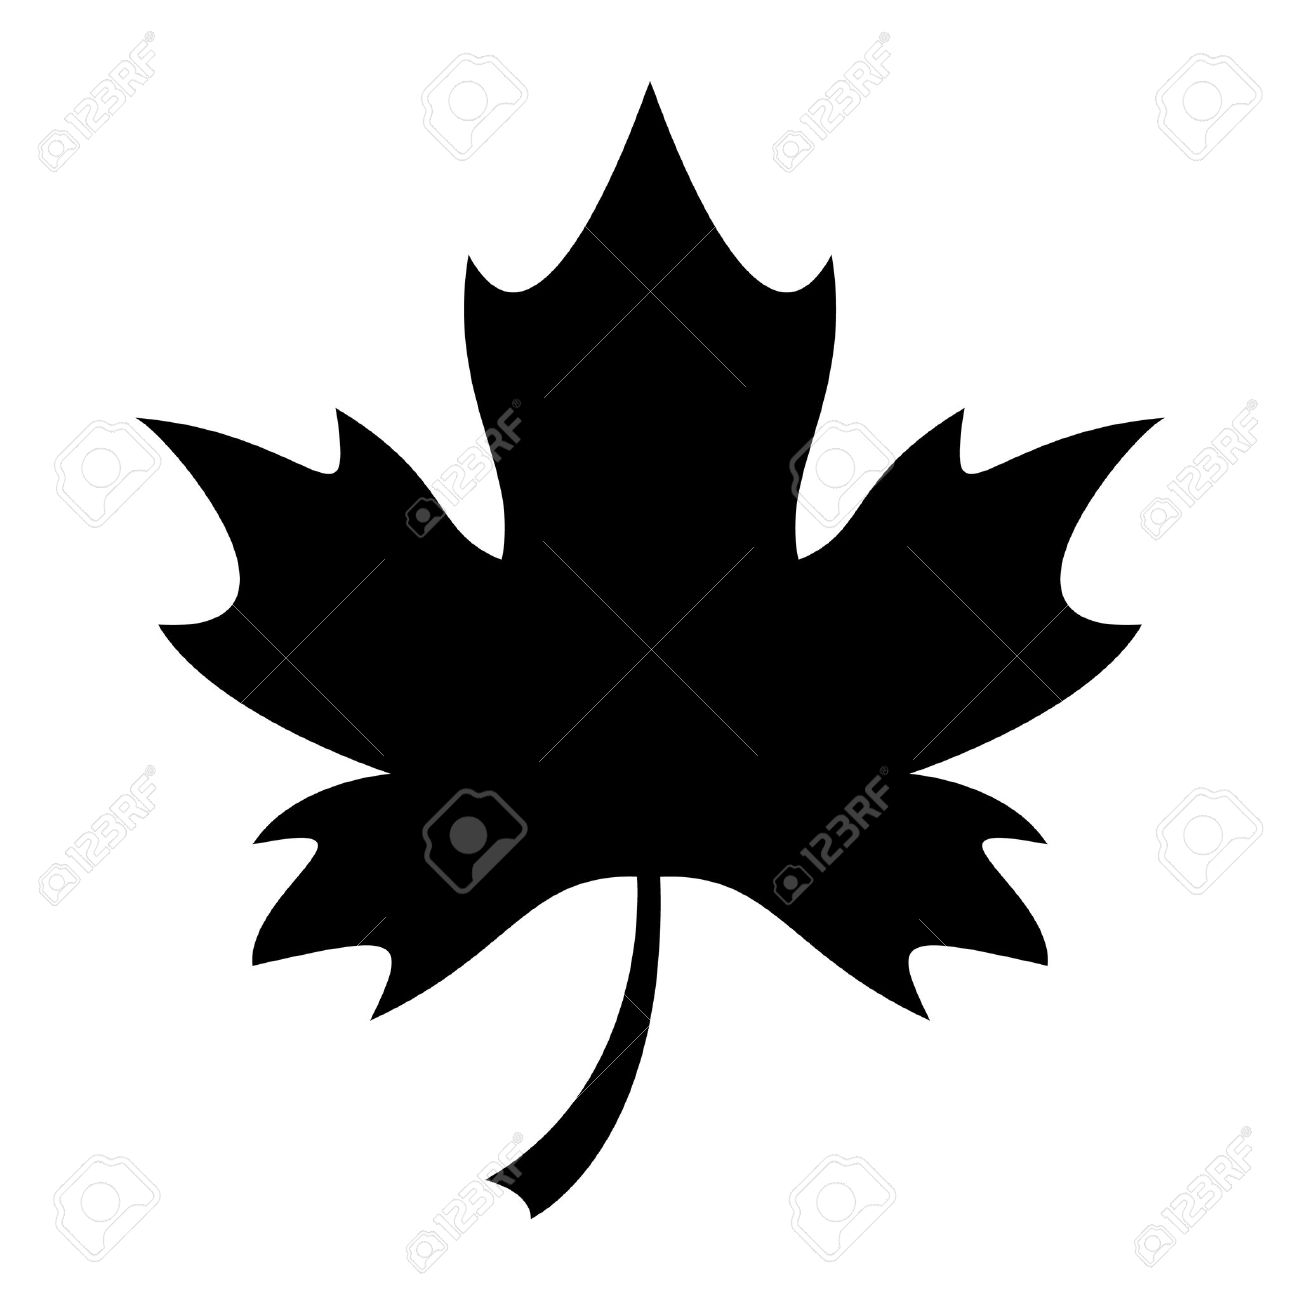 maple leaf vector icon royalty free cliparts vectors and stock rh 123rf com maple leaf vector art maple leaf vector icon